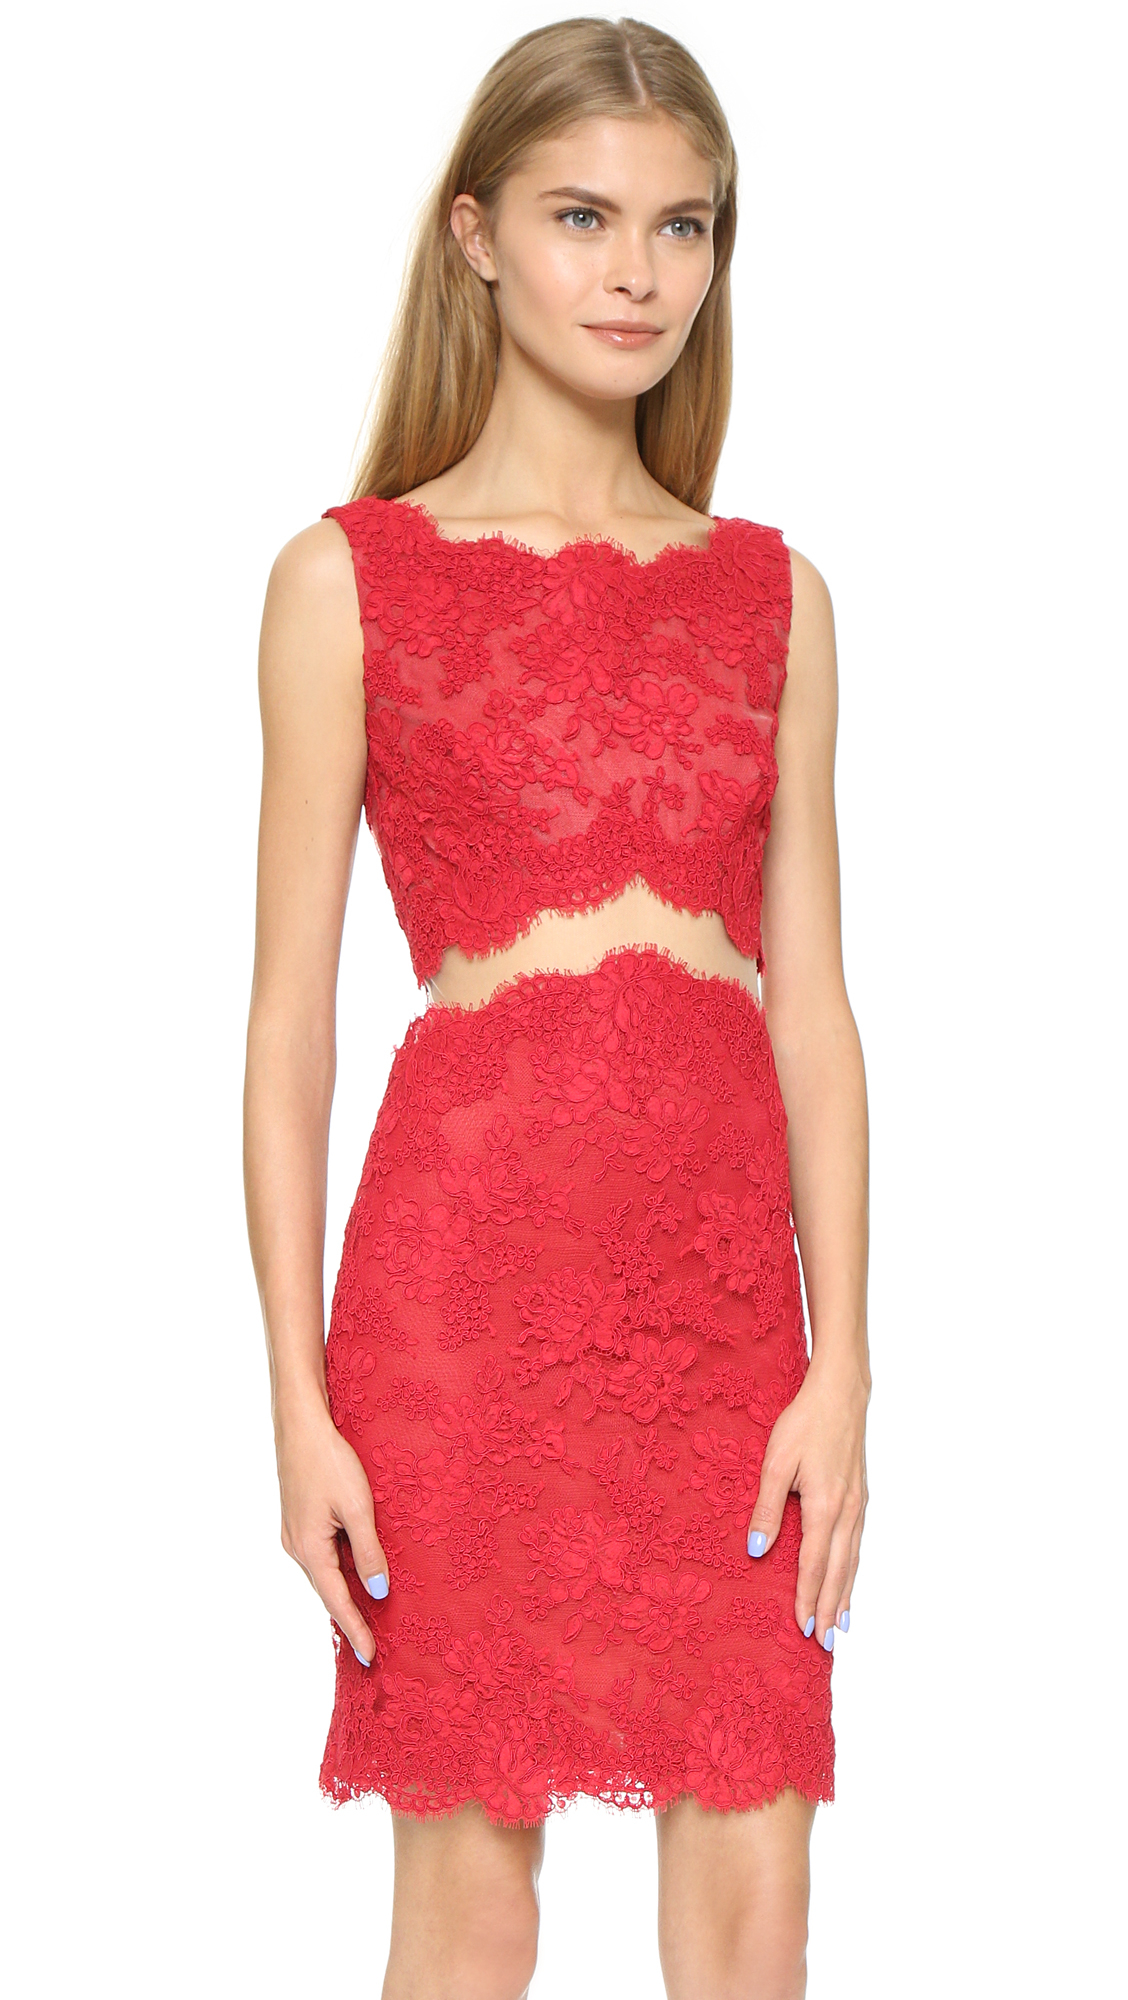 Lyst - Reem Acra Re-embroidered Sheath Dress - Red in Red